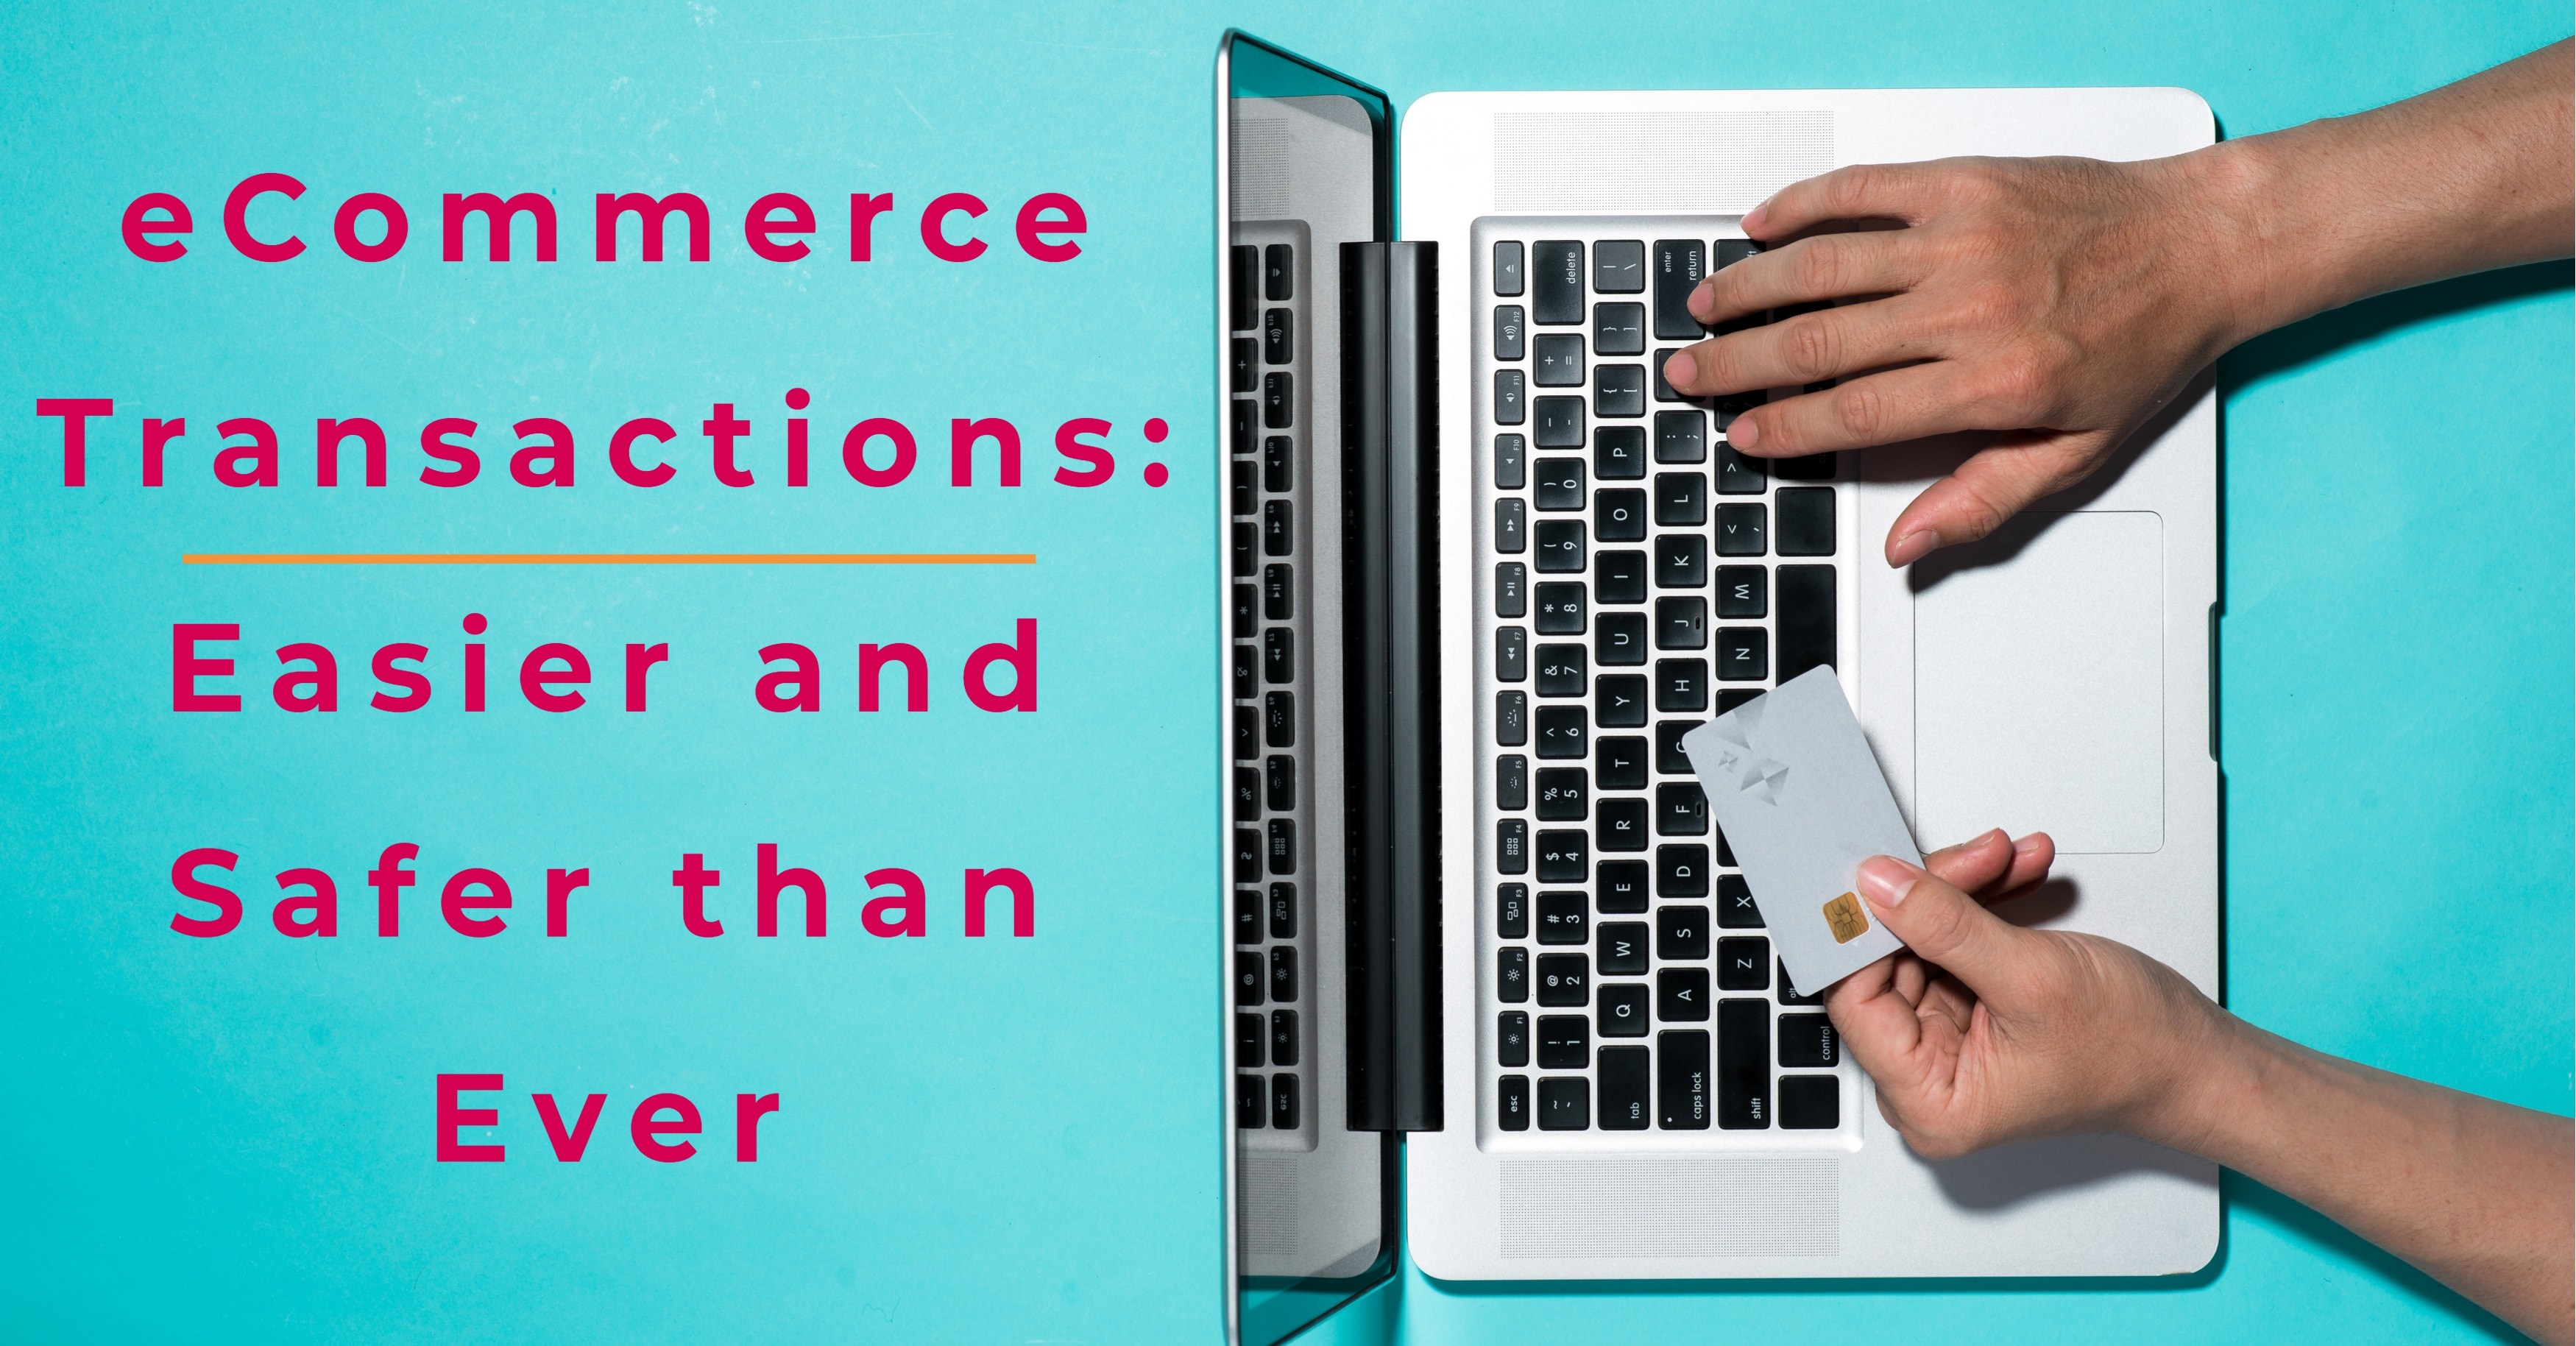 Make eCommerce Transactions Easier and Safer than Ever